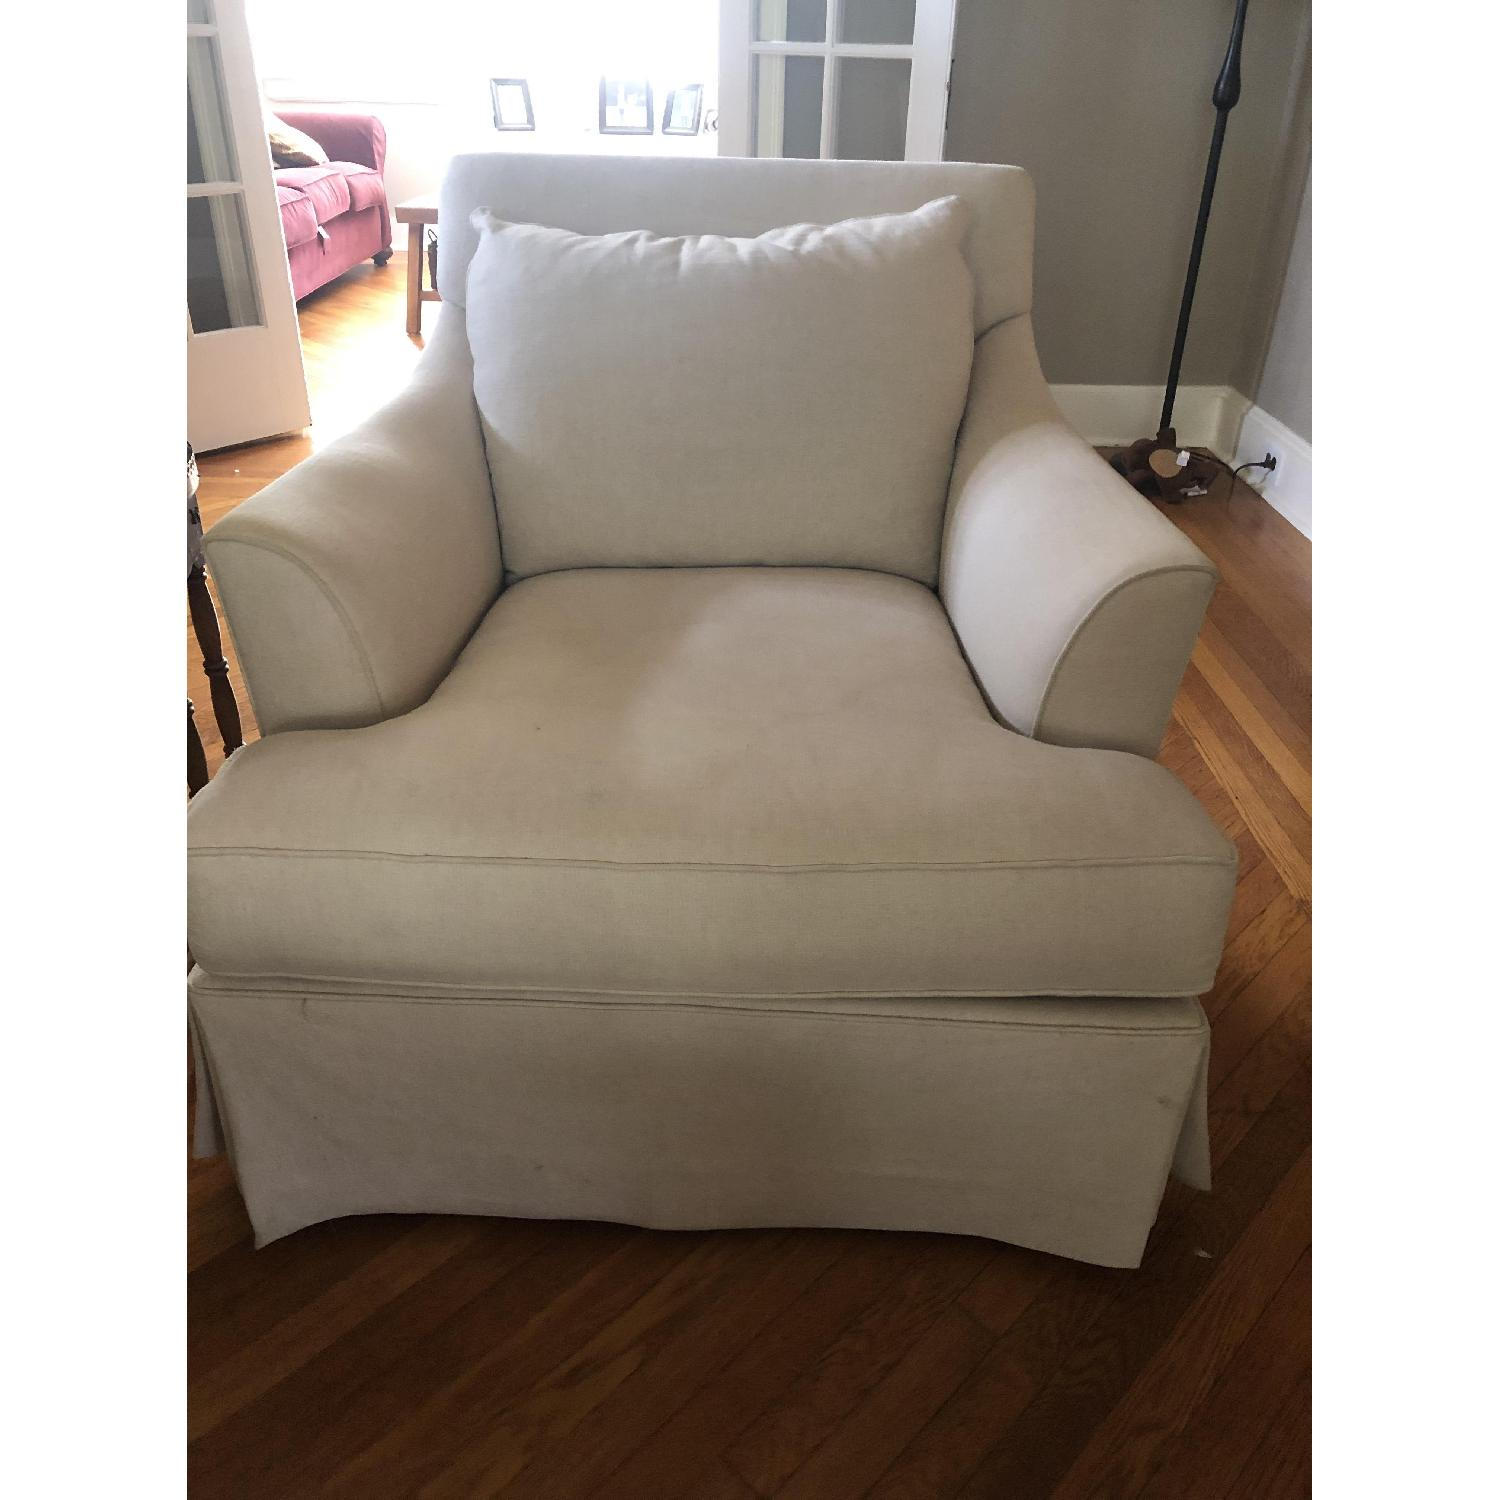 Macy's Natural Accent Chairs - image-1